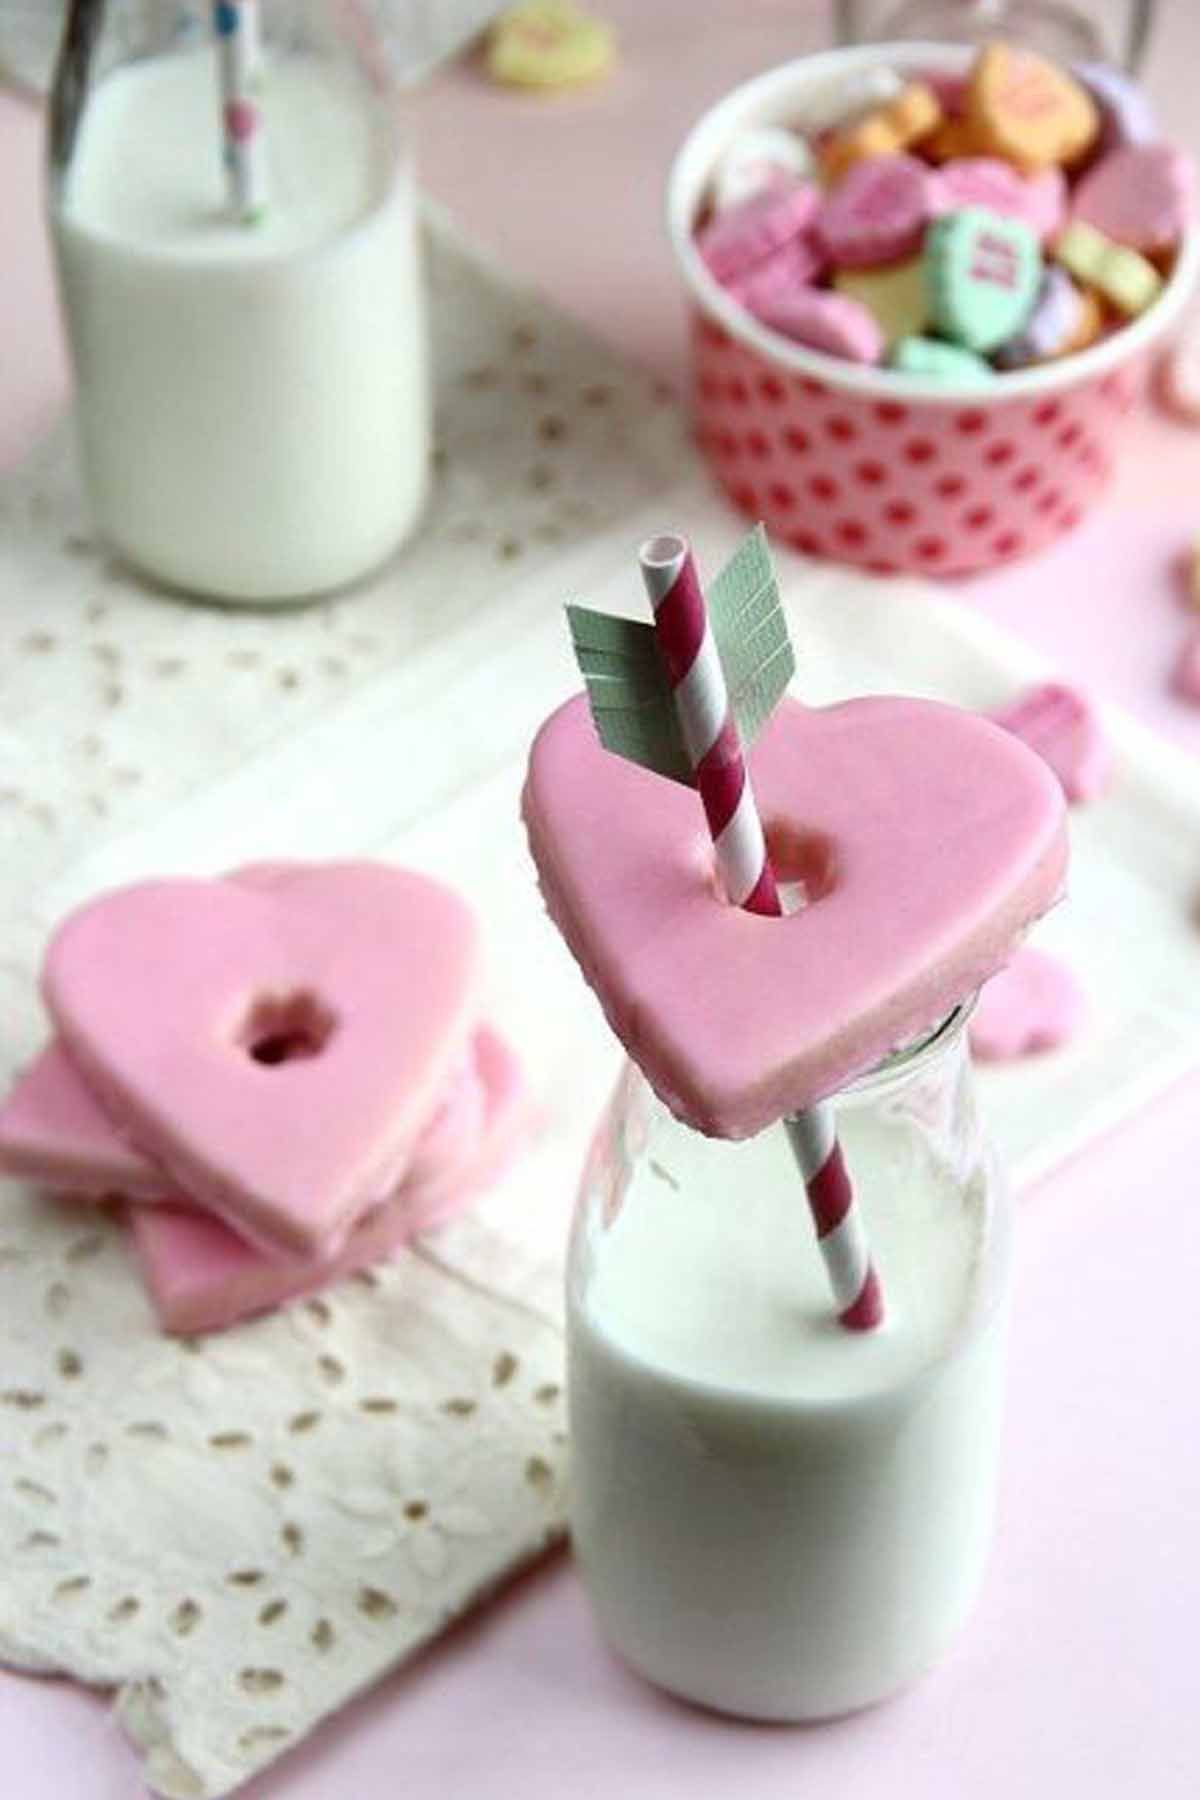 53 Best Valentine\'s Day Recipes - Easy Brunch, Dinner, and Food ...